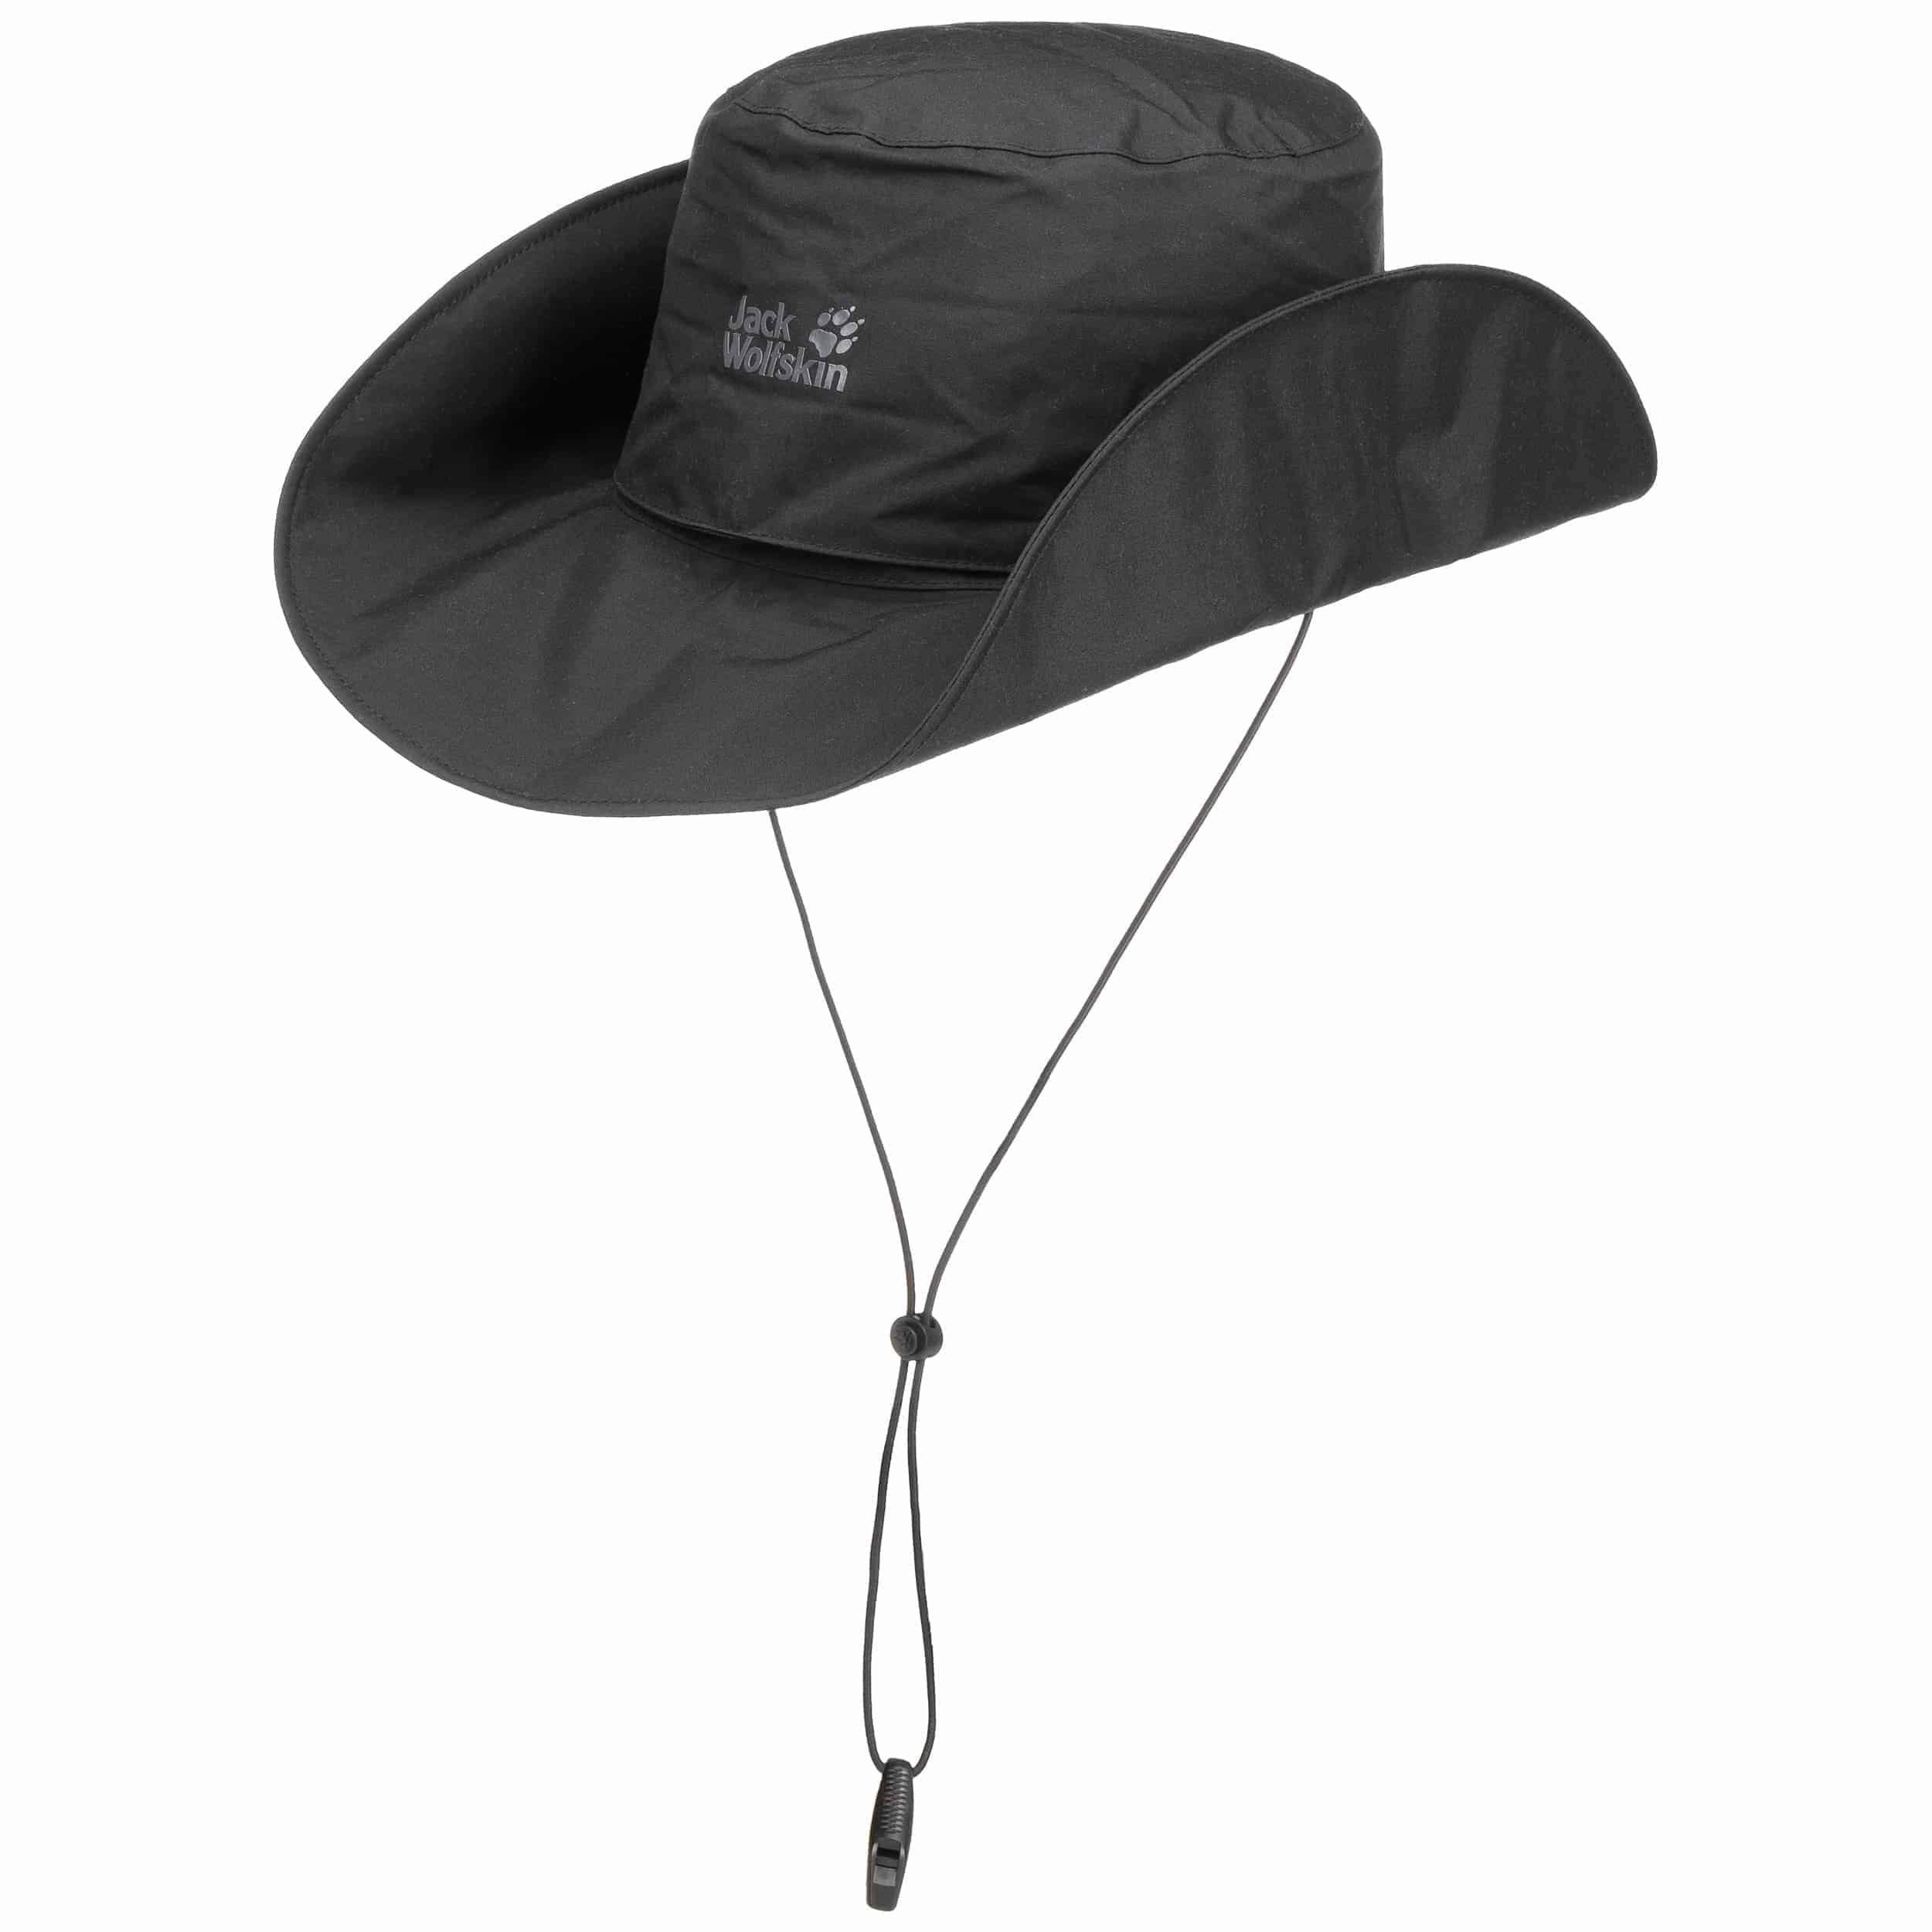 Texapore 2 in 1 Outdoor Hat by Jack Wolfskin